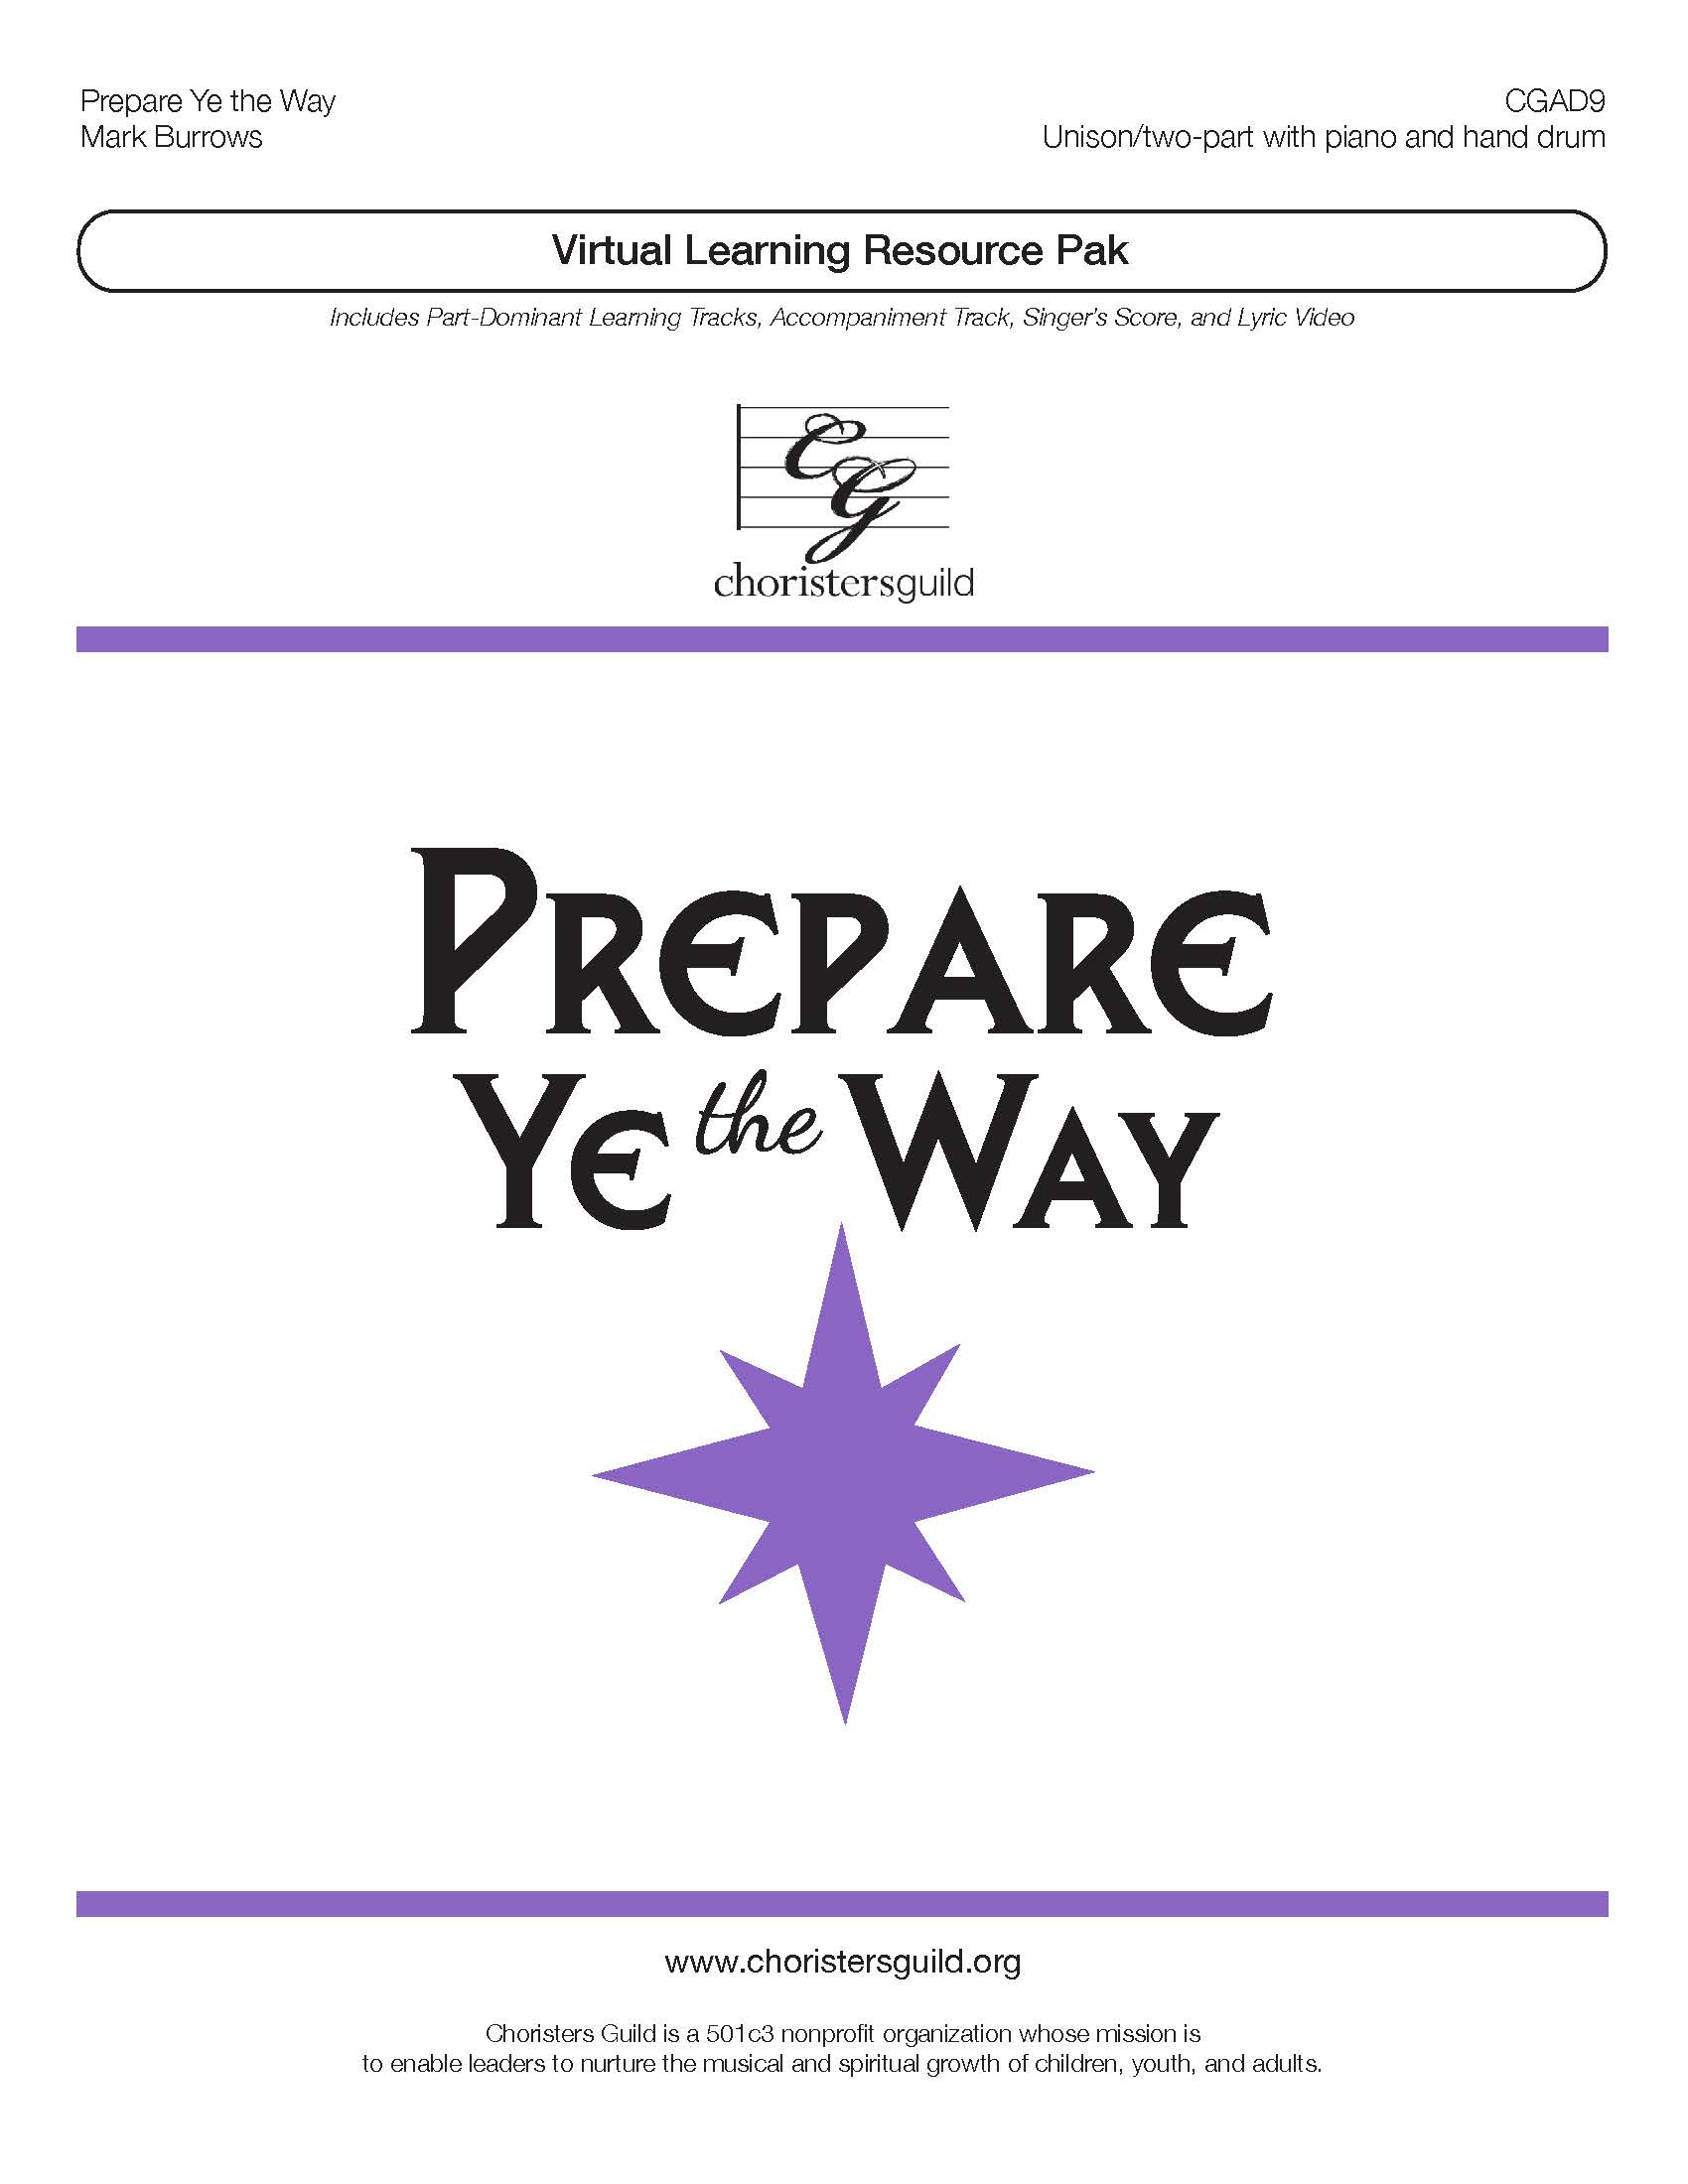 Prepare Ye the Way (Virtual Learning Resource Pak) - Two-part